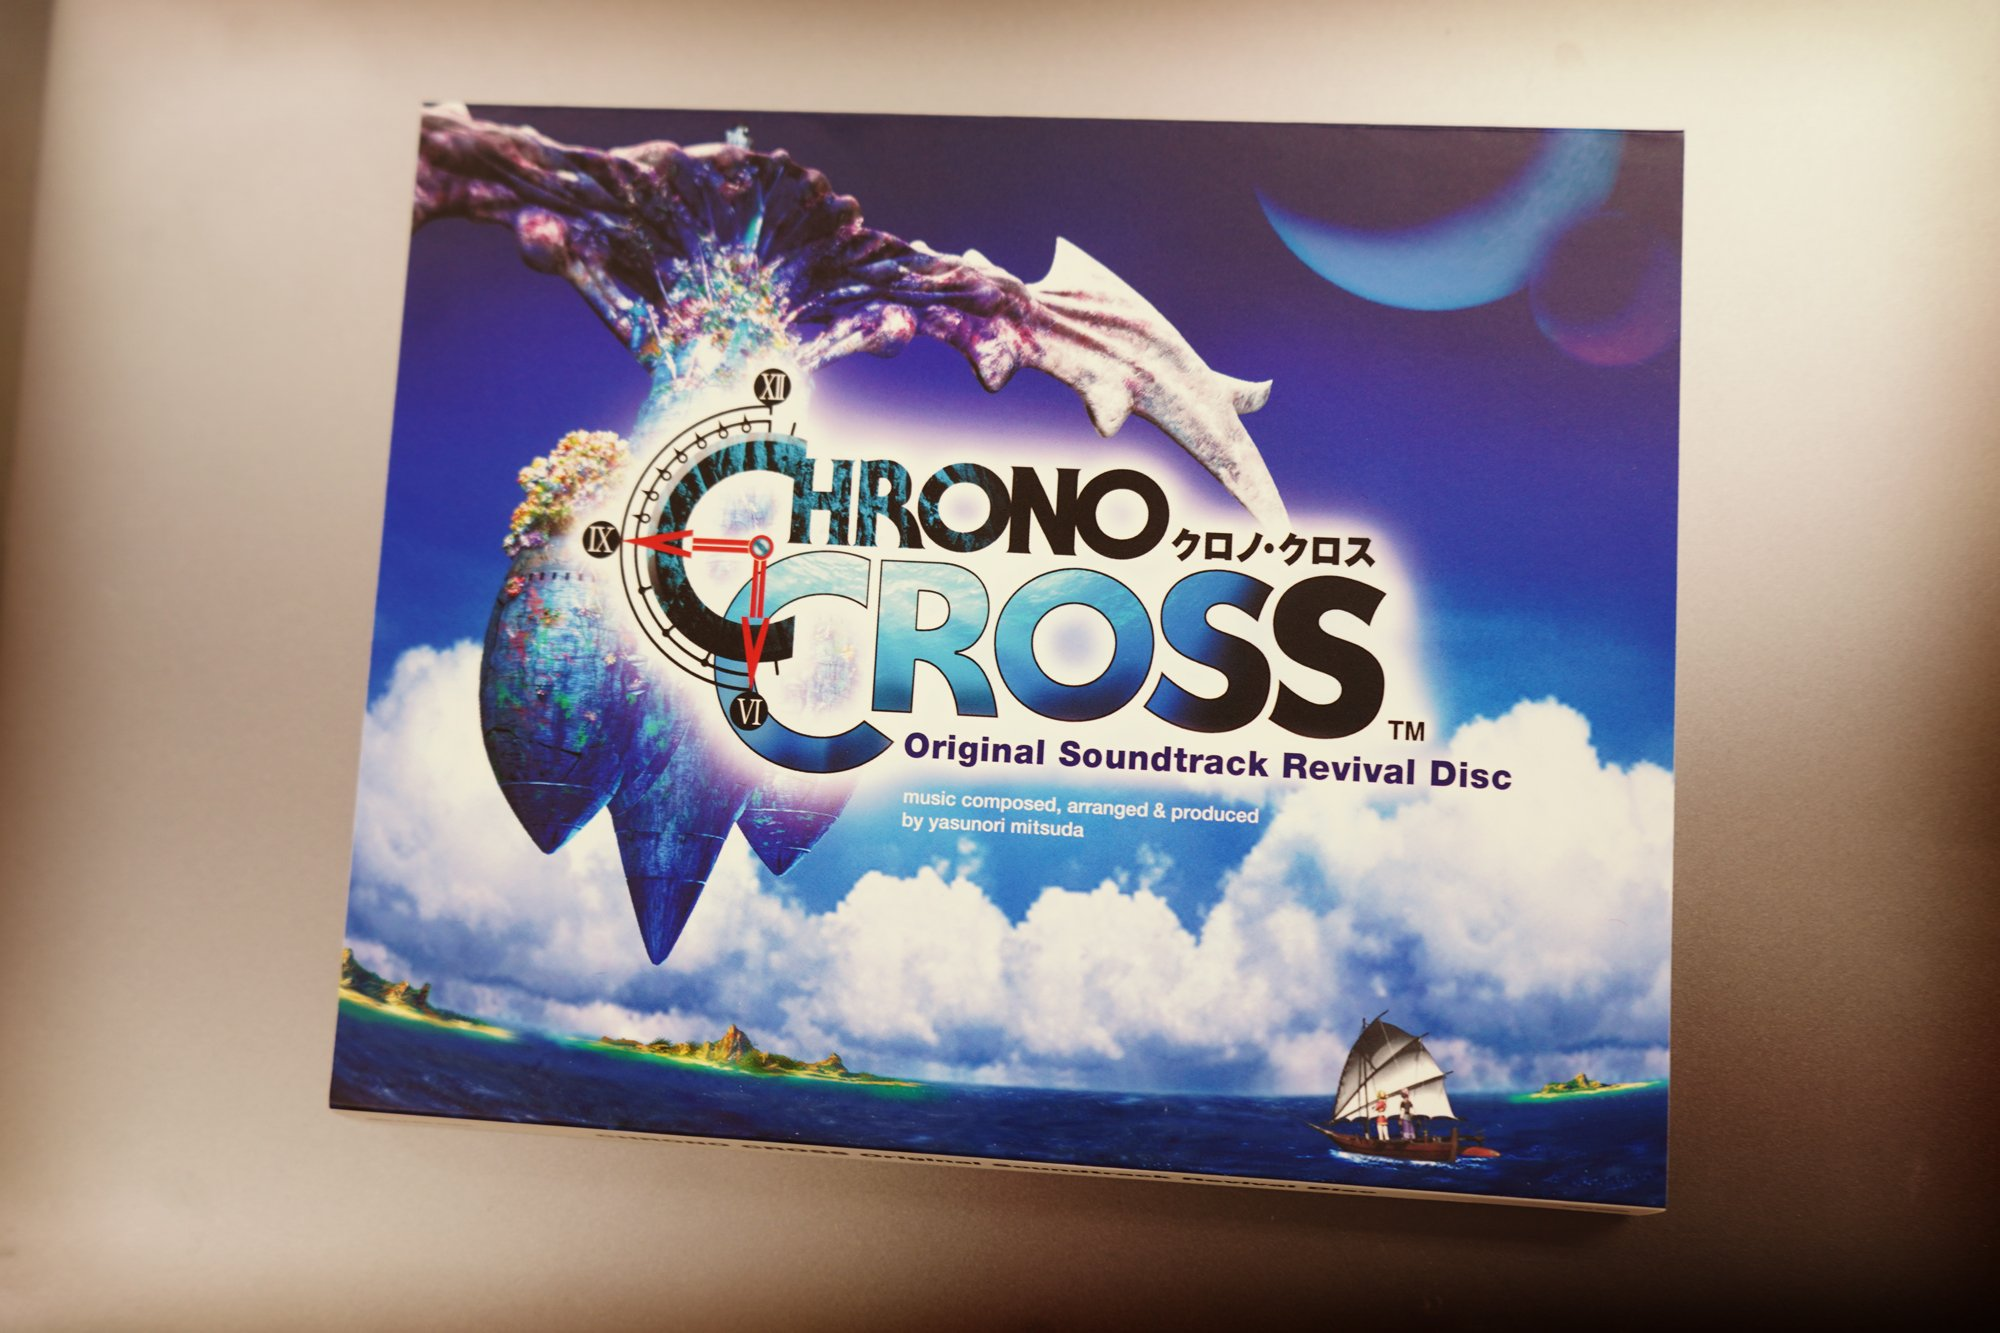 CHRONO CROSS Revival Disc ジャケット